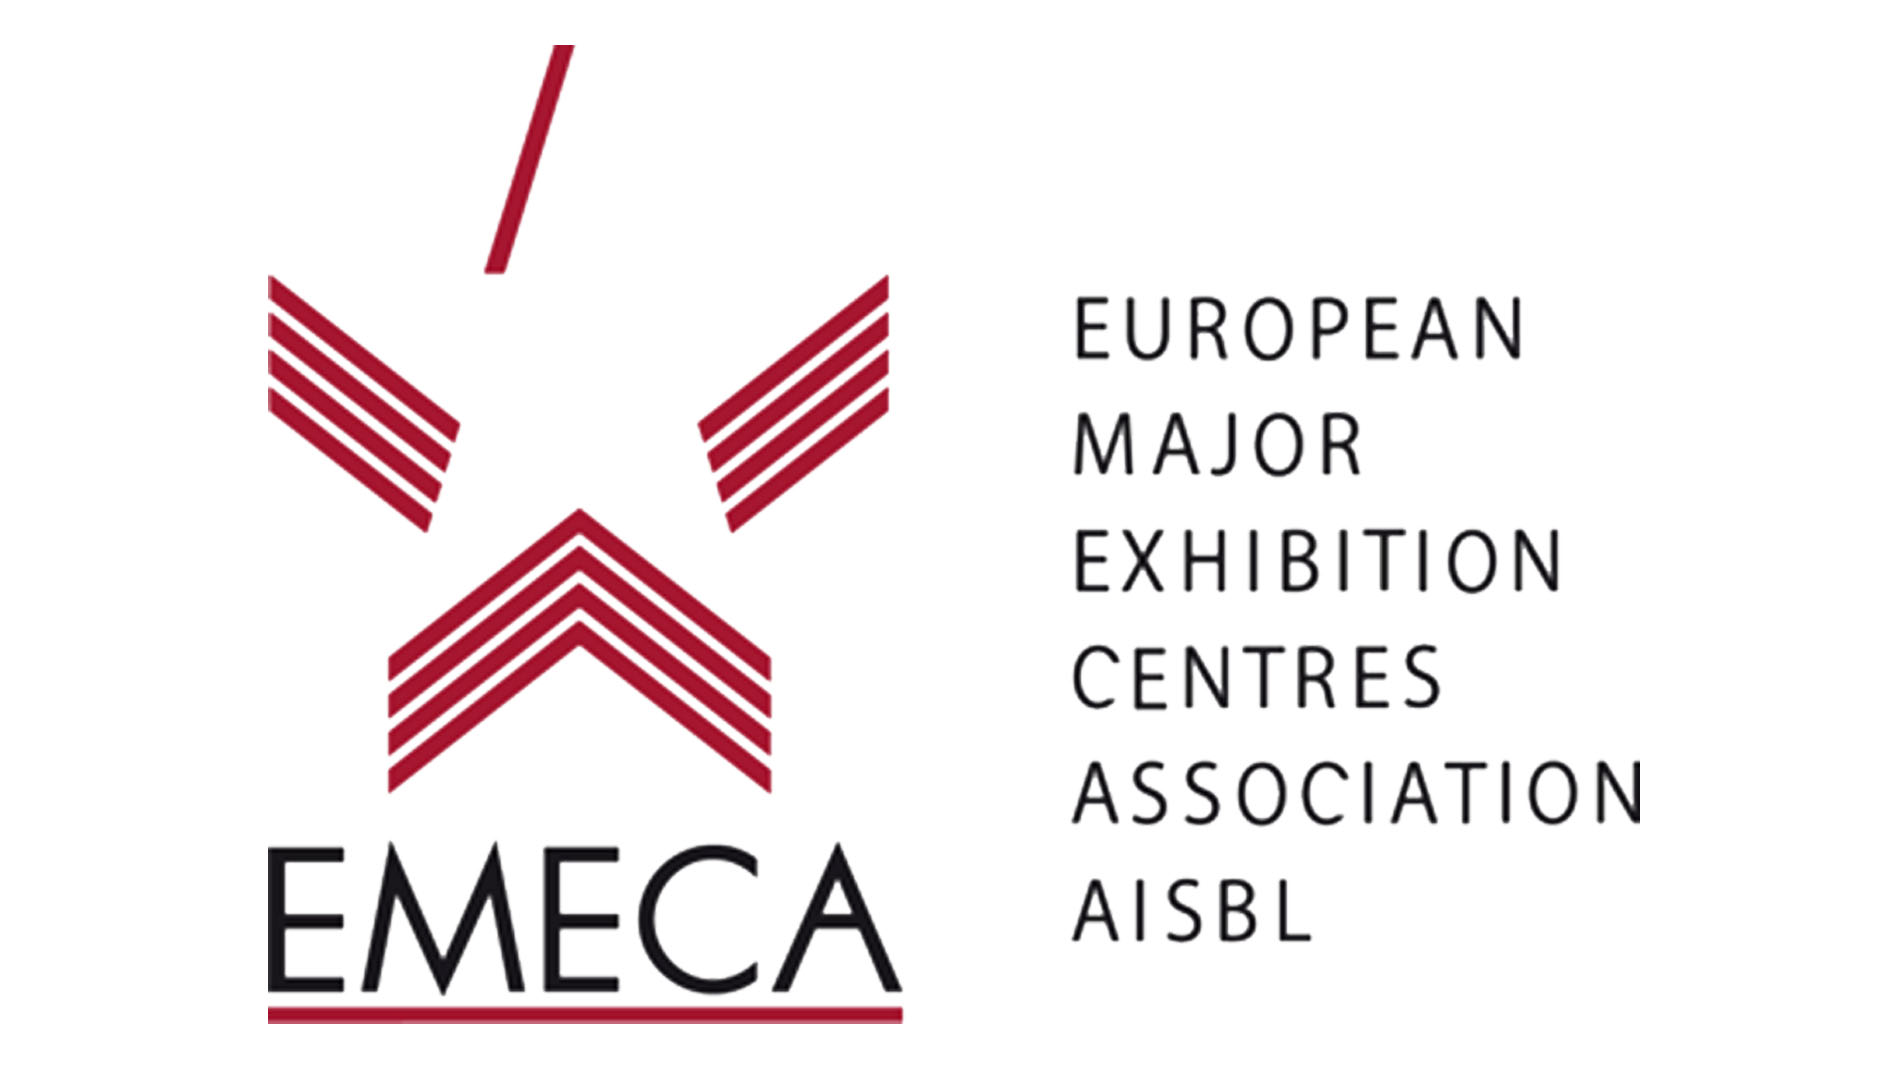 European Major Exhibition Centres Association